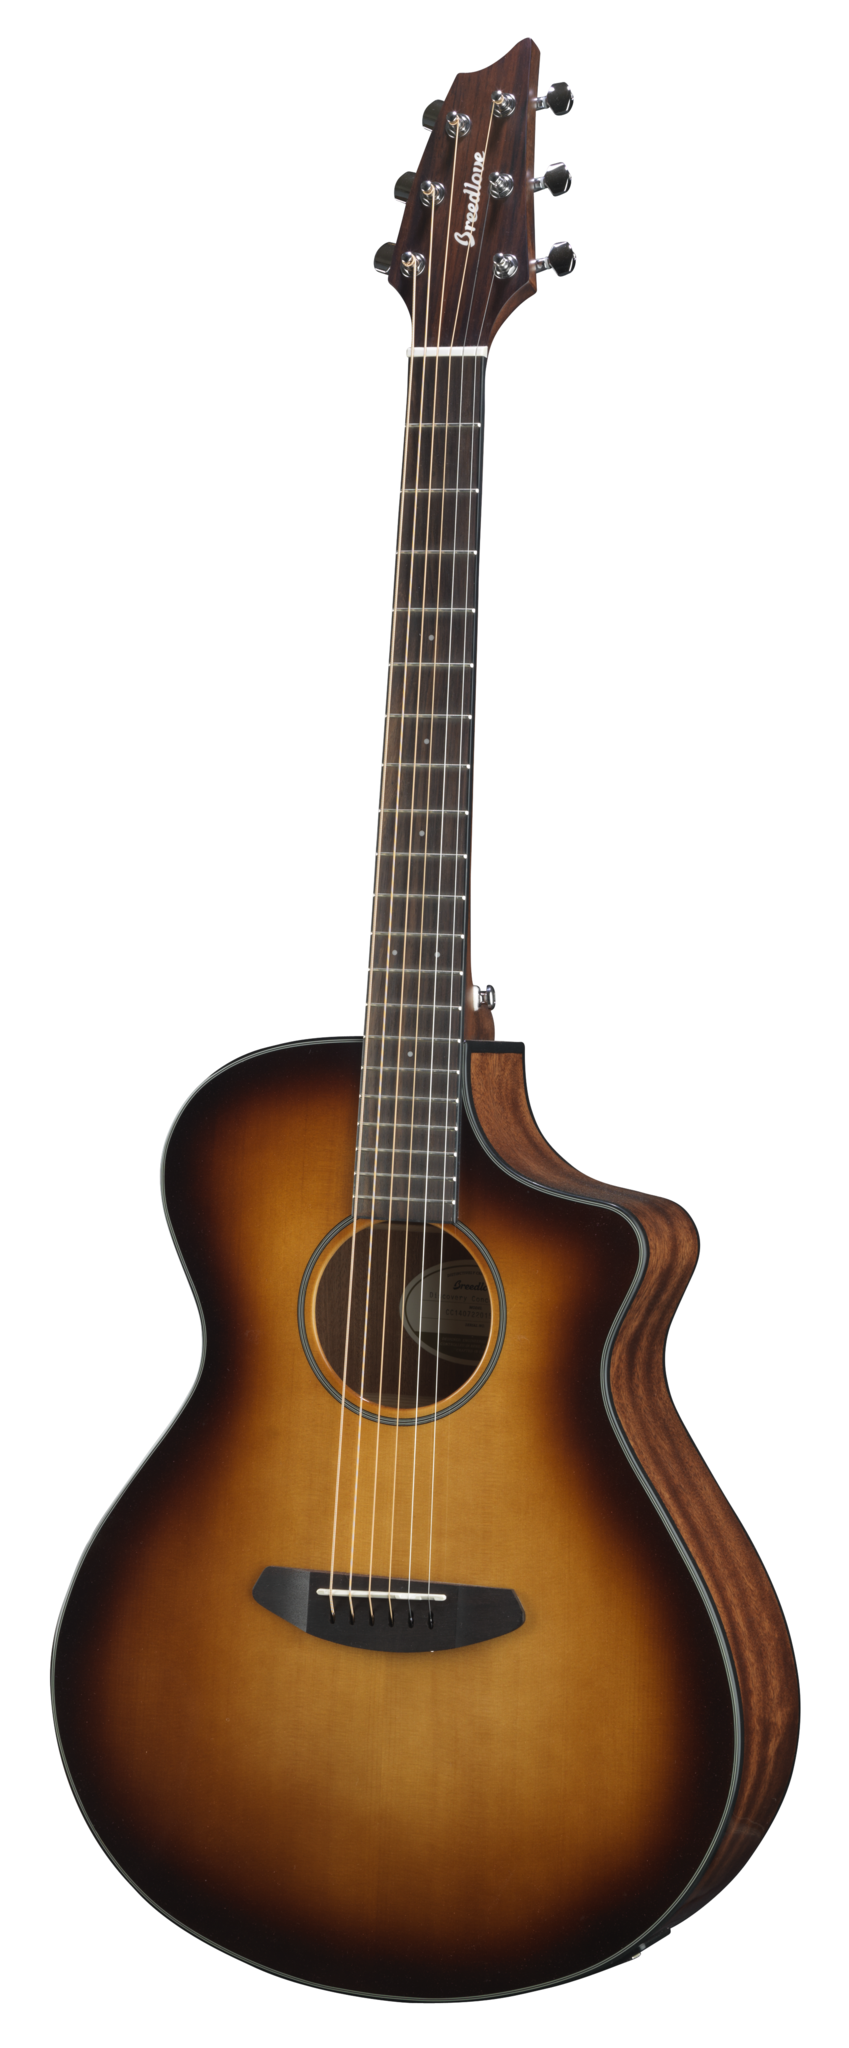 Breedlove Discovery Concert CE Sunburst Sitka Spruce/Mahogany Acoustic Electric Guitar - Includes Gig Bag